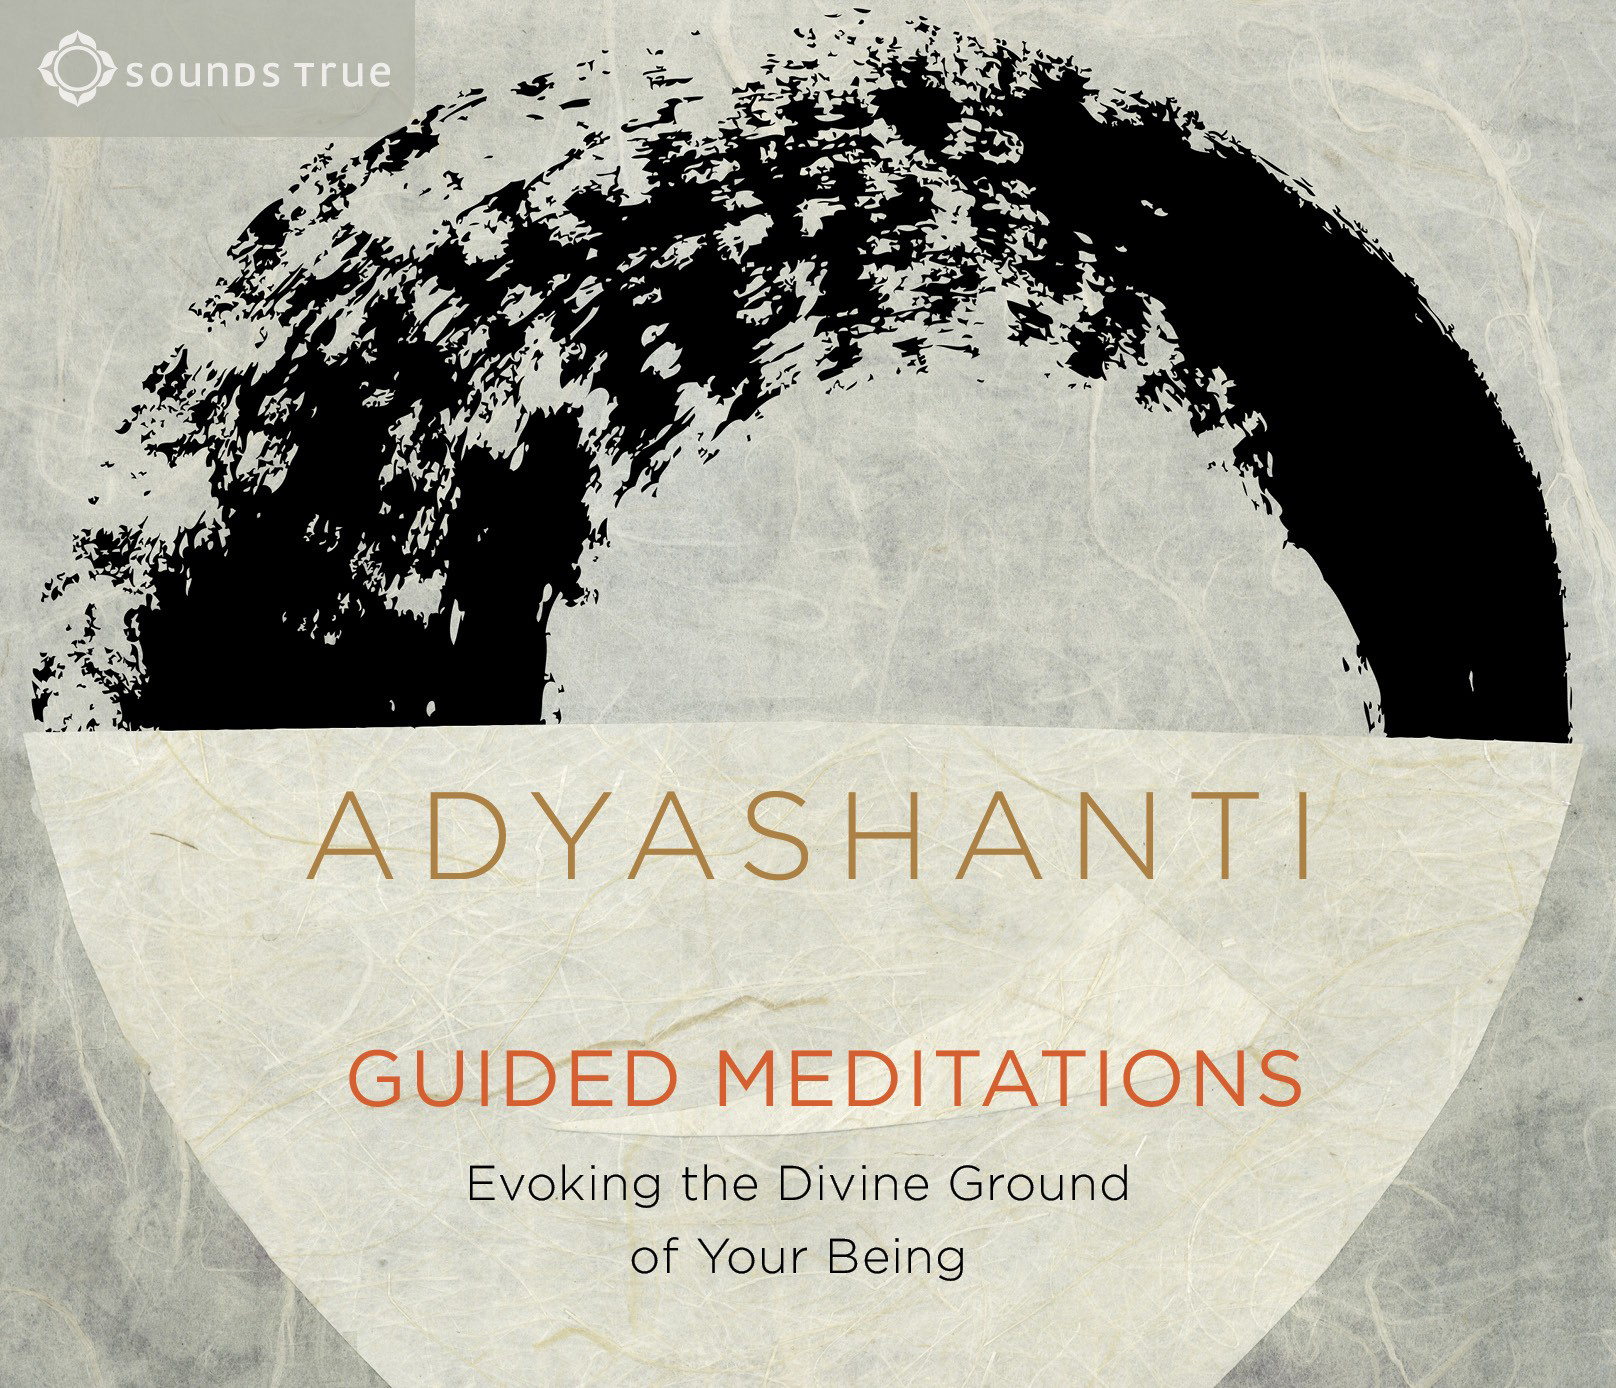 CD: Guided Meditations - Evoking the Divine Ground of Being, 4 CD